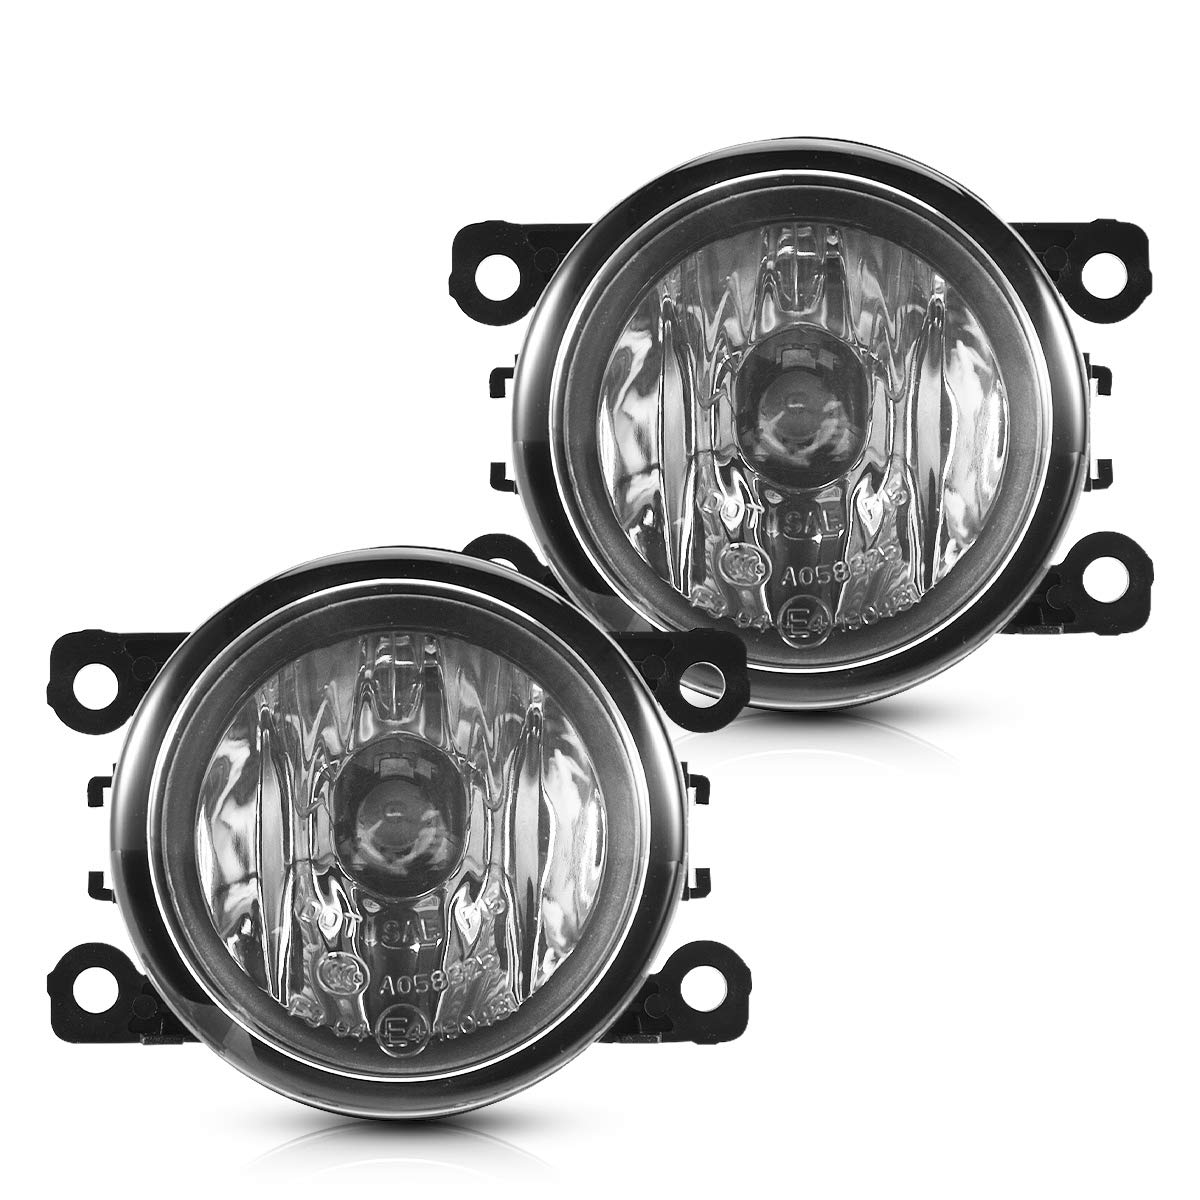 2009-13 Suzuki Swift Replacement Fog Light Assembly for 2004-08 Jaguar S//X-type with H11 12V 55W Halogen Bulbs Clear Lens Torchbeam Fog Lights for 2010-2016 Honda Acura